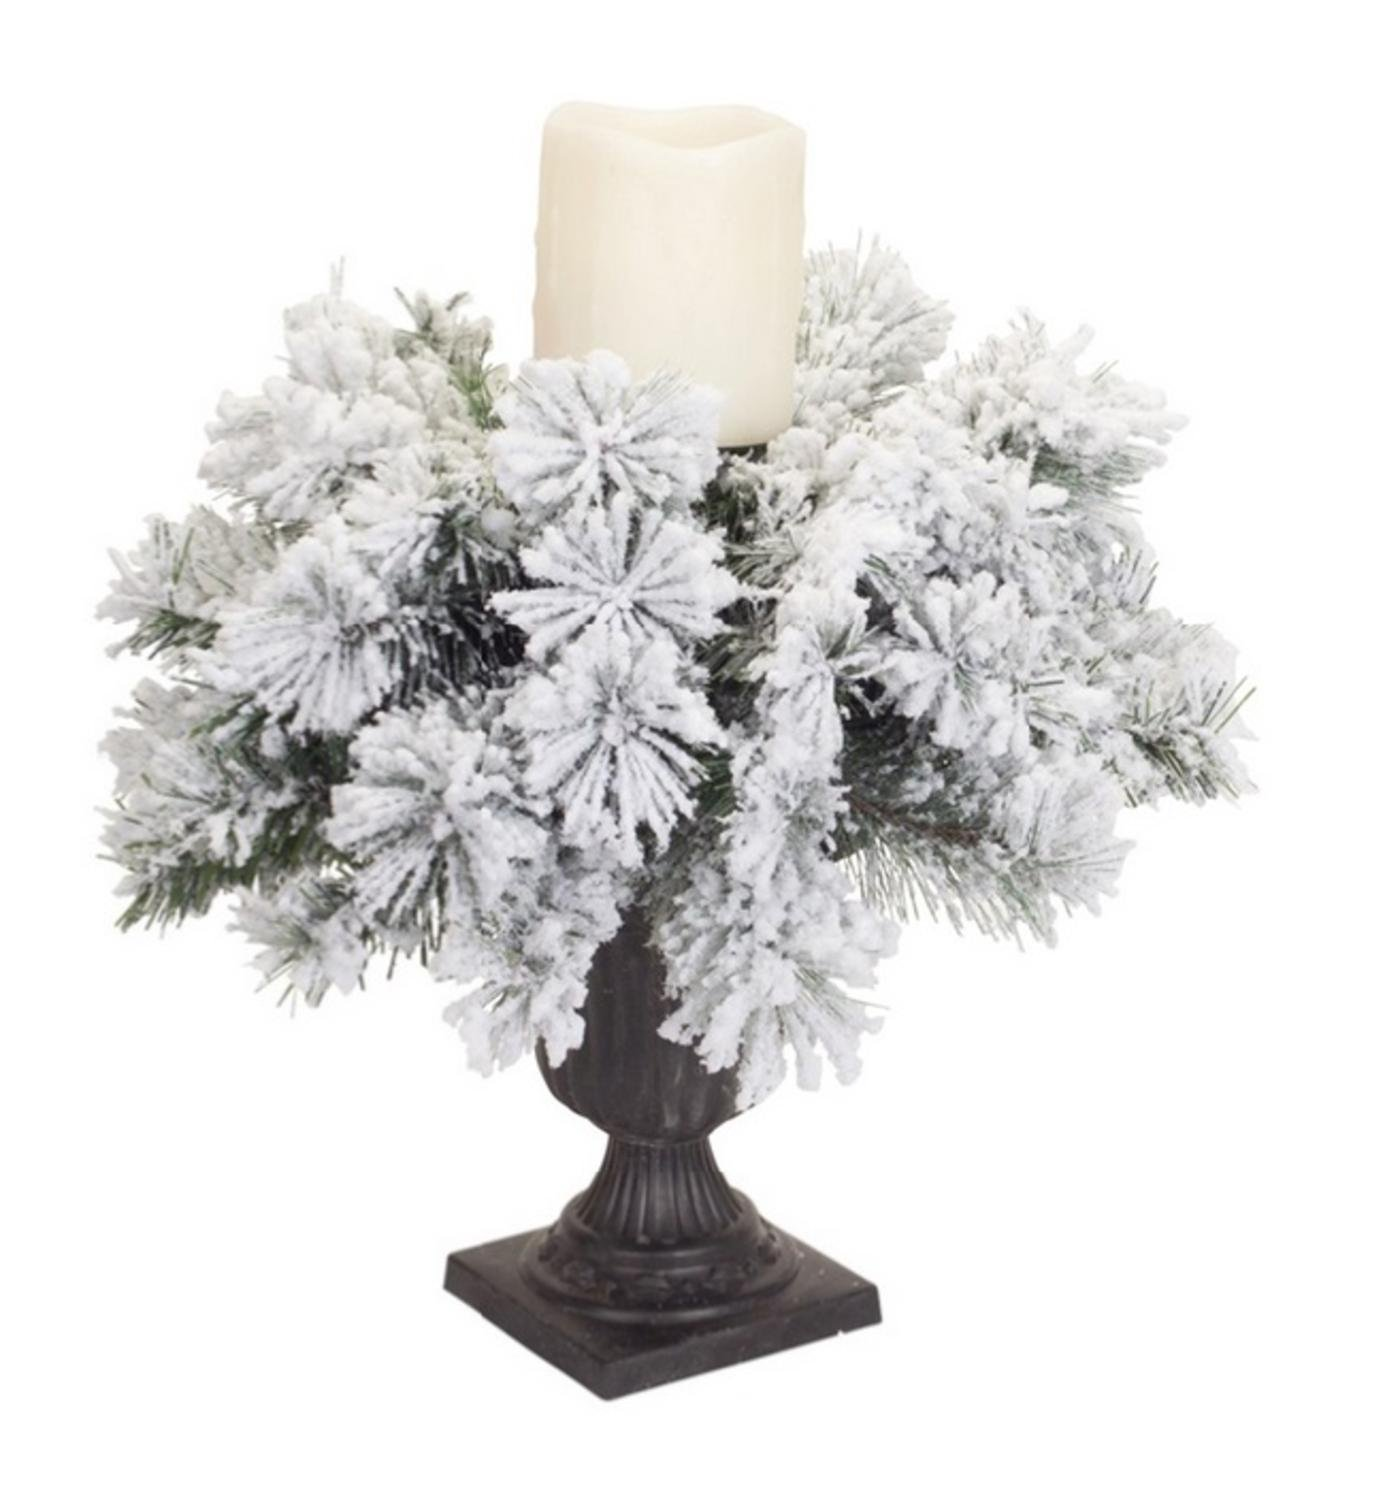 Pack of 2 Flocked Snowy Pine Christmas Pillar Candle Holders 15''